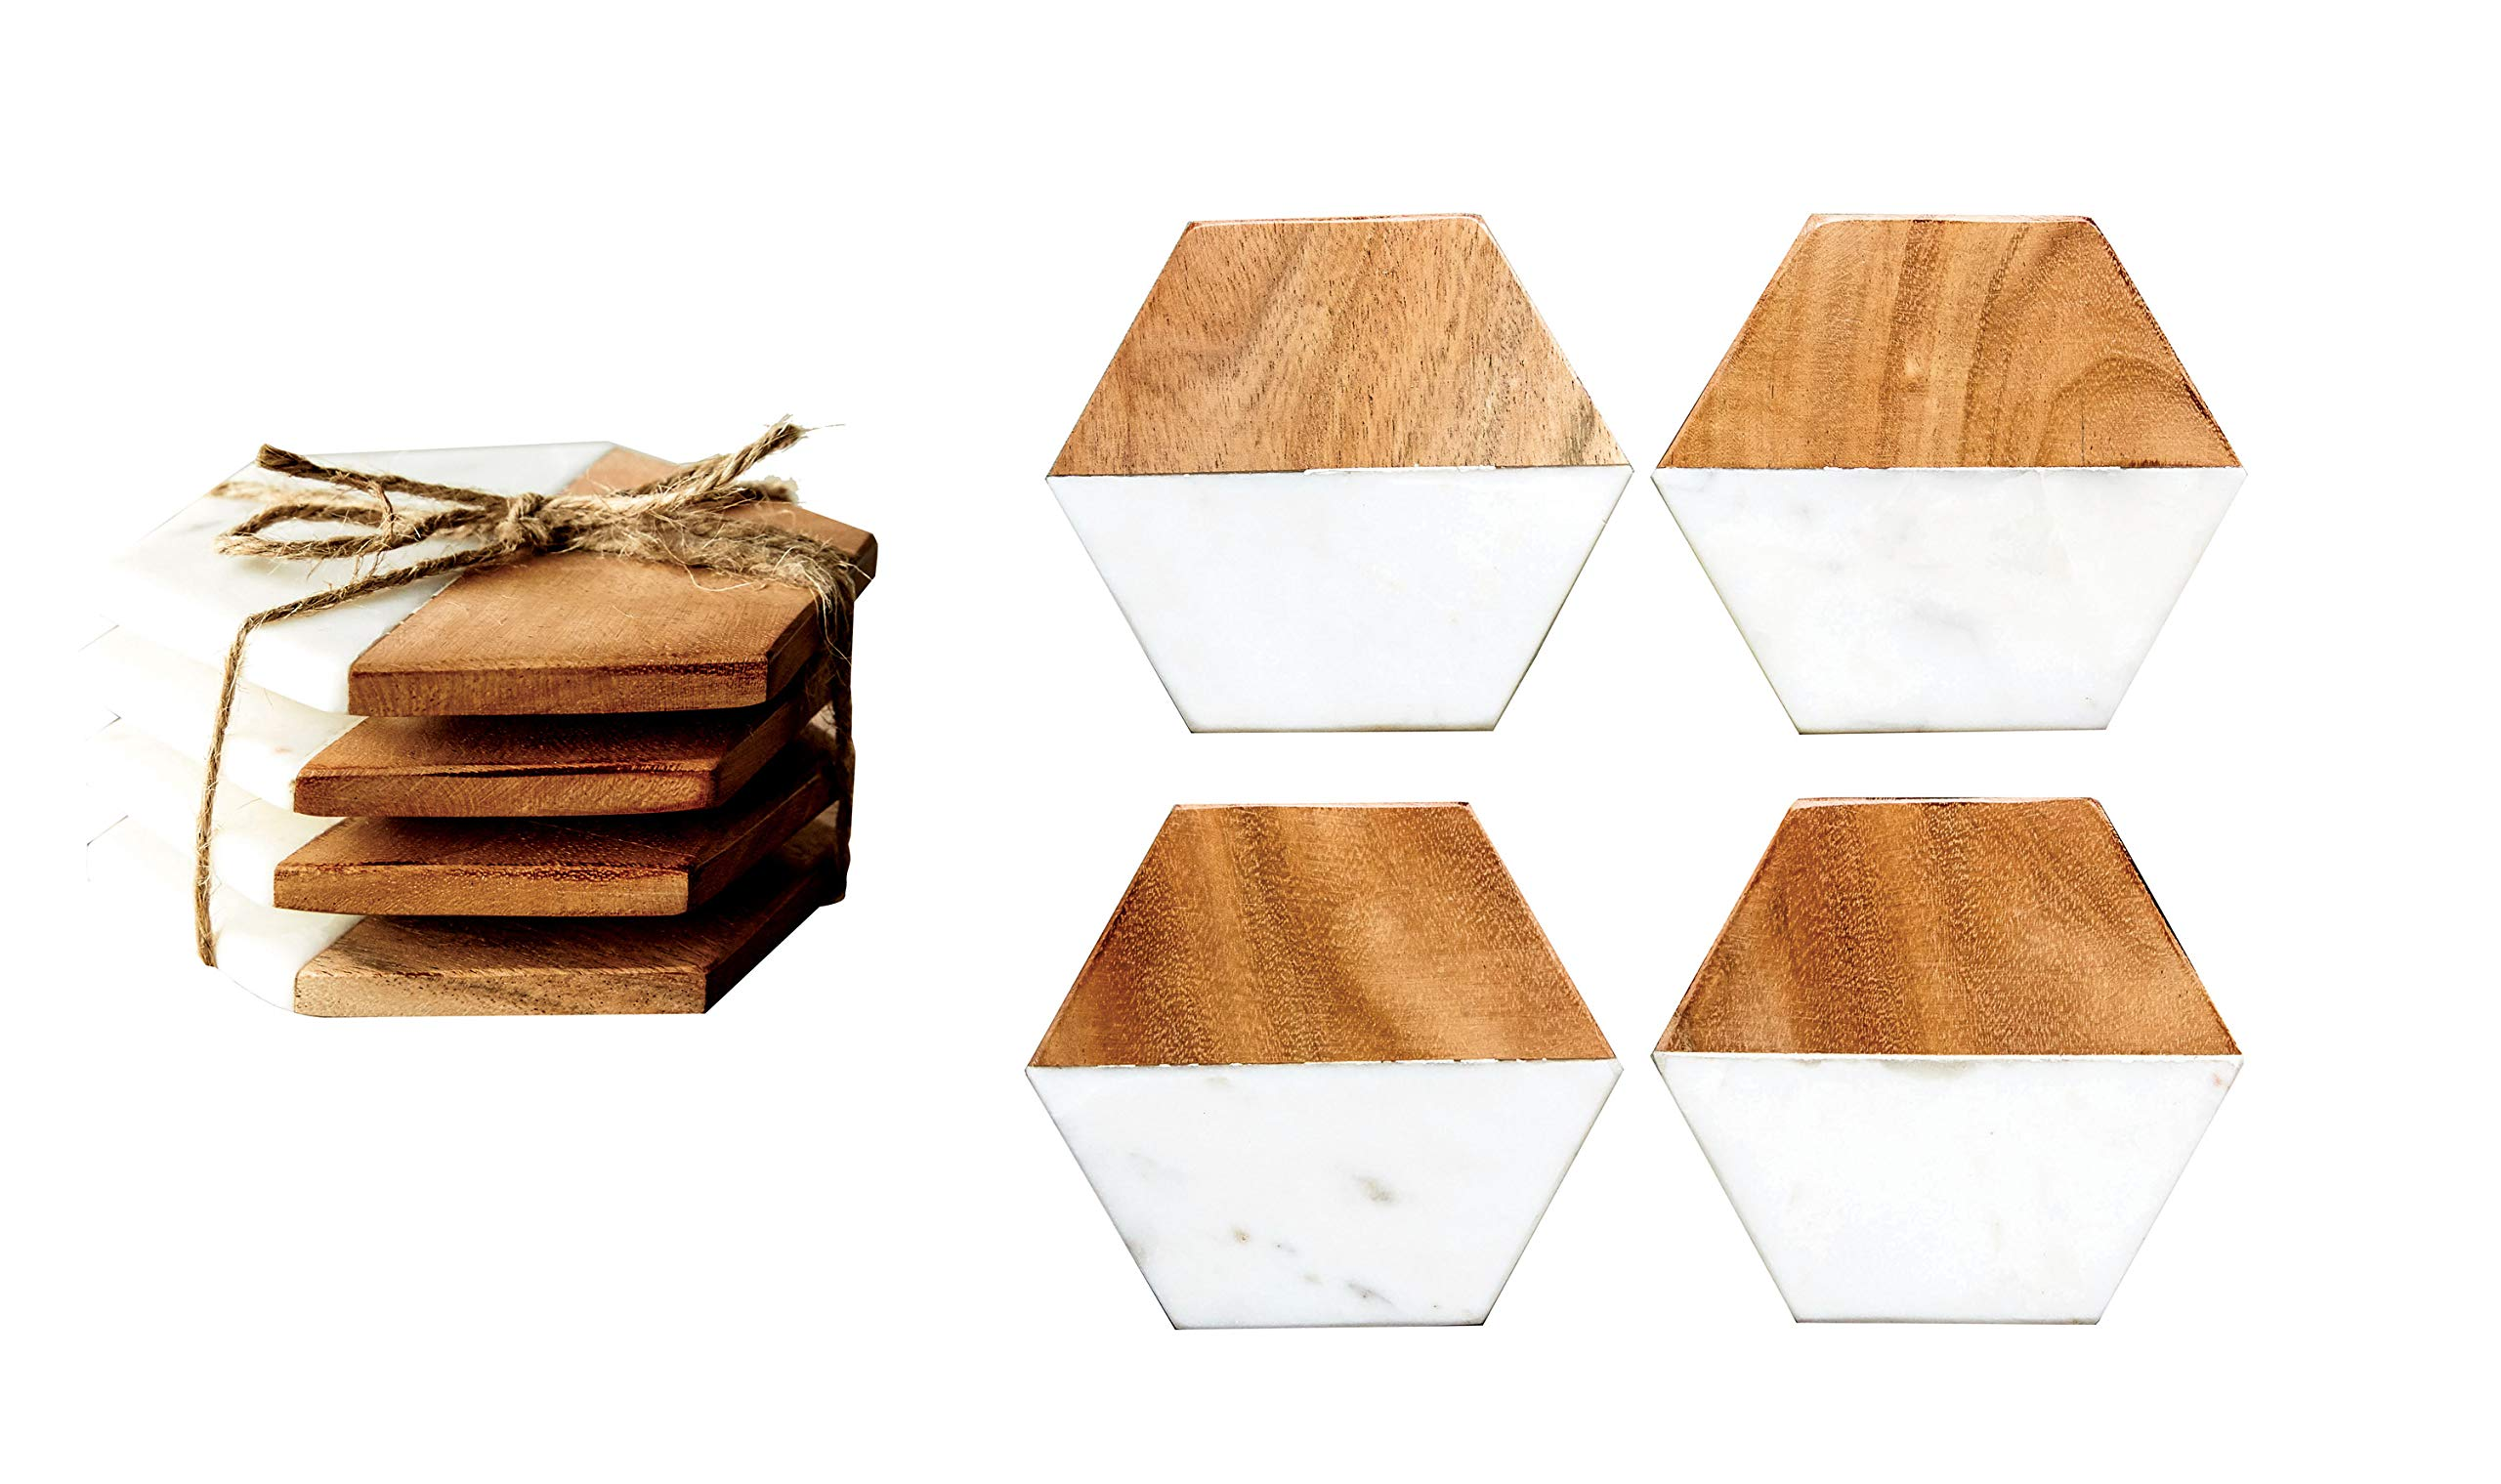 Creative Co-Op DA6336 Set of 4 Marble & Mango Wood Hexagon Coasters by Creative Co-op (Image #4)